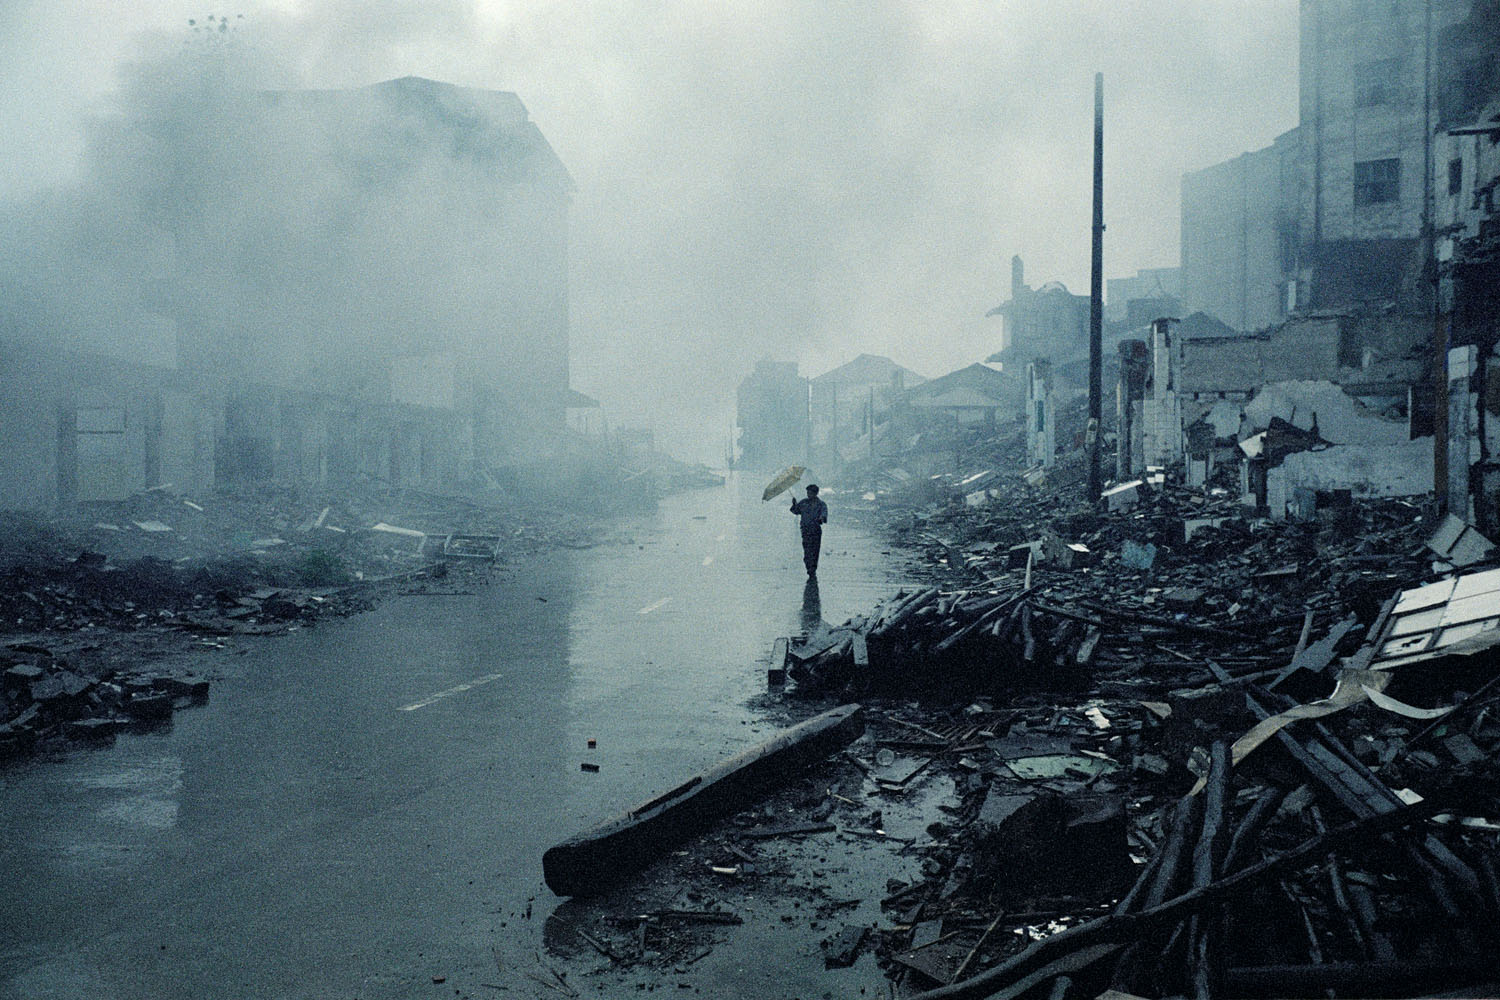 The destroyed old city of Wanzhou, only a few remaining local inhabitants are left behind. Mostly migrant workers remain to dismantle the city by hand and occasionally by using explosives.